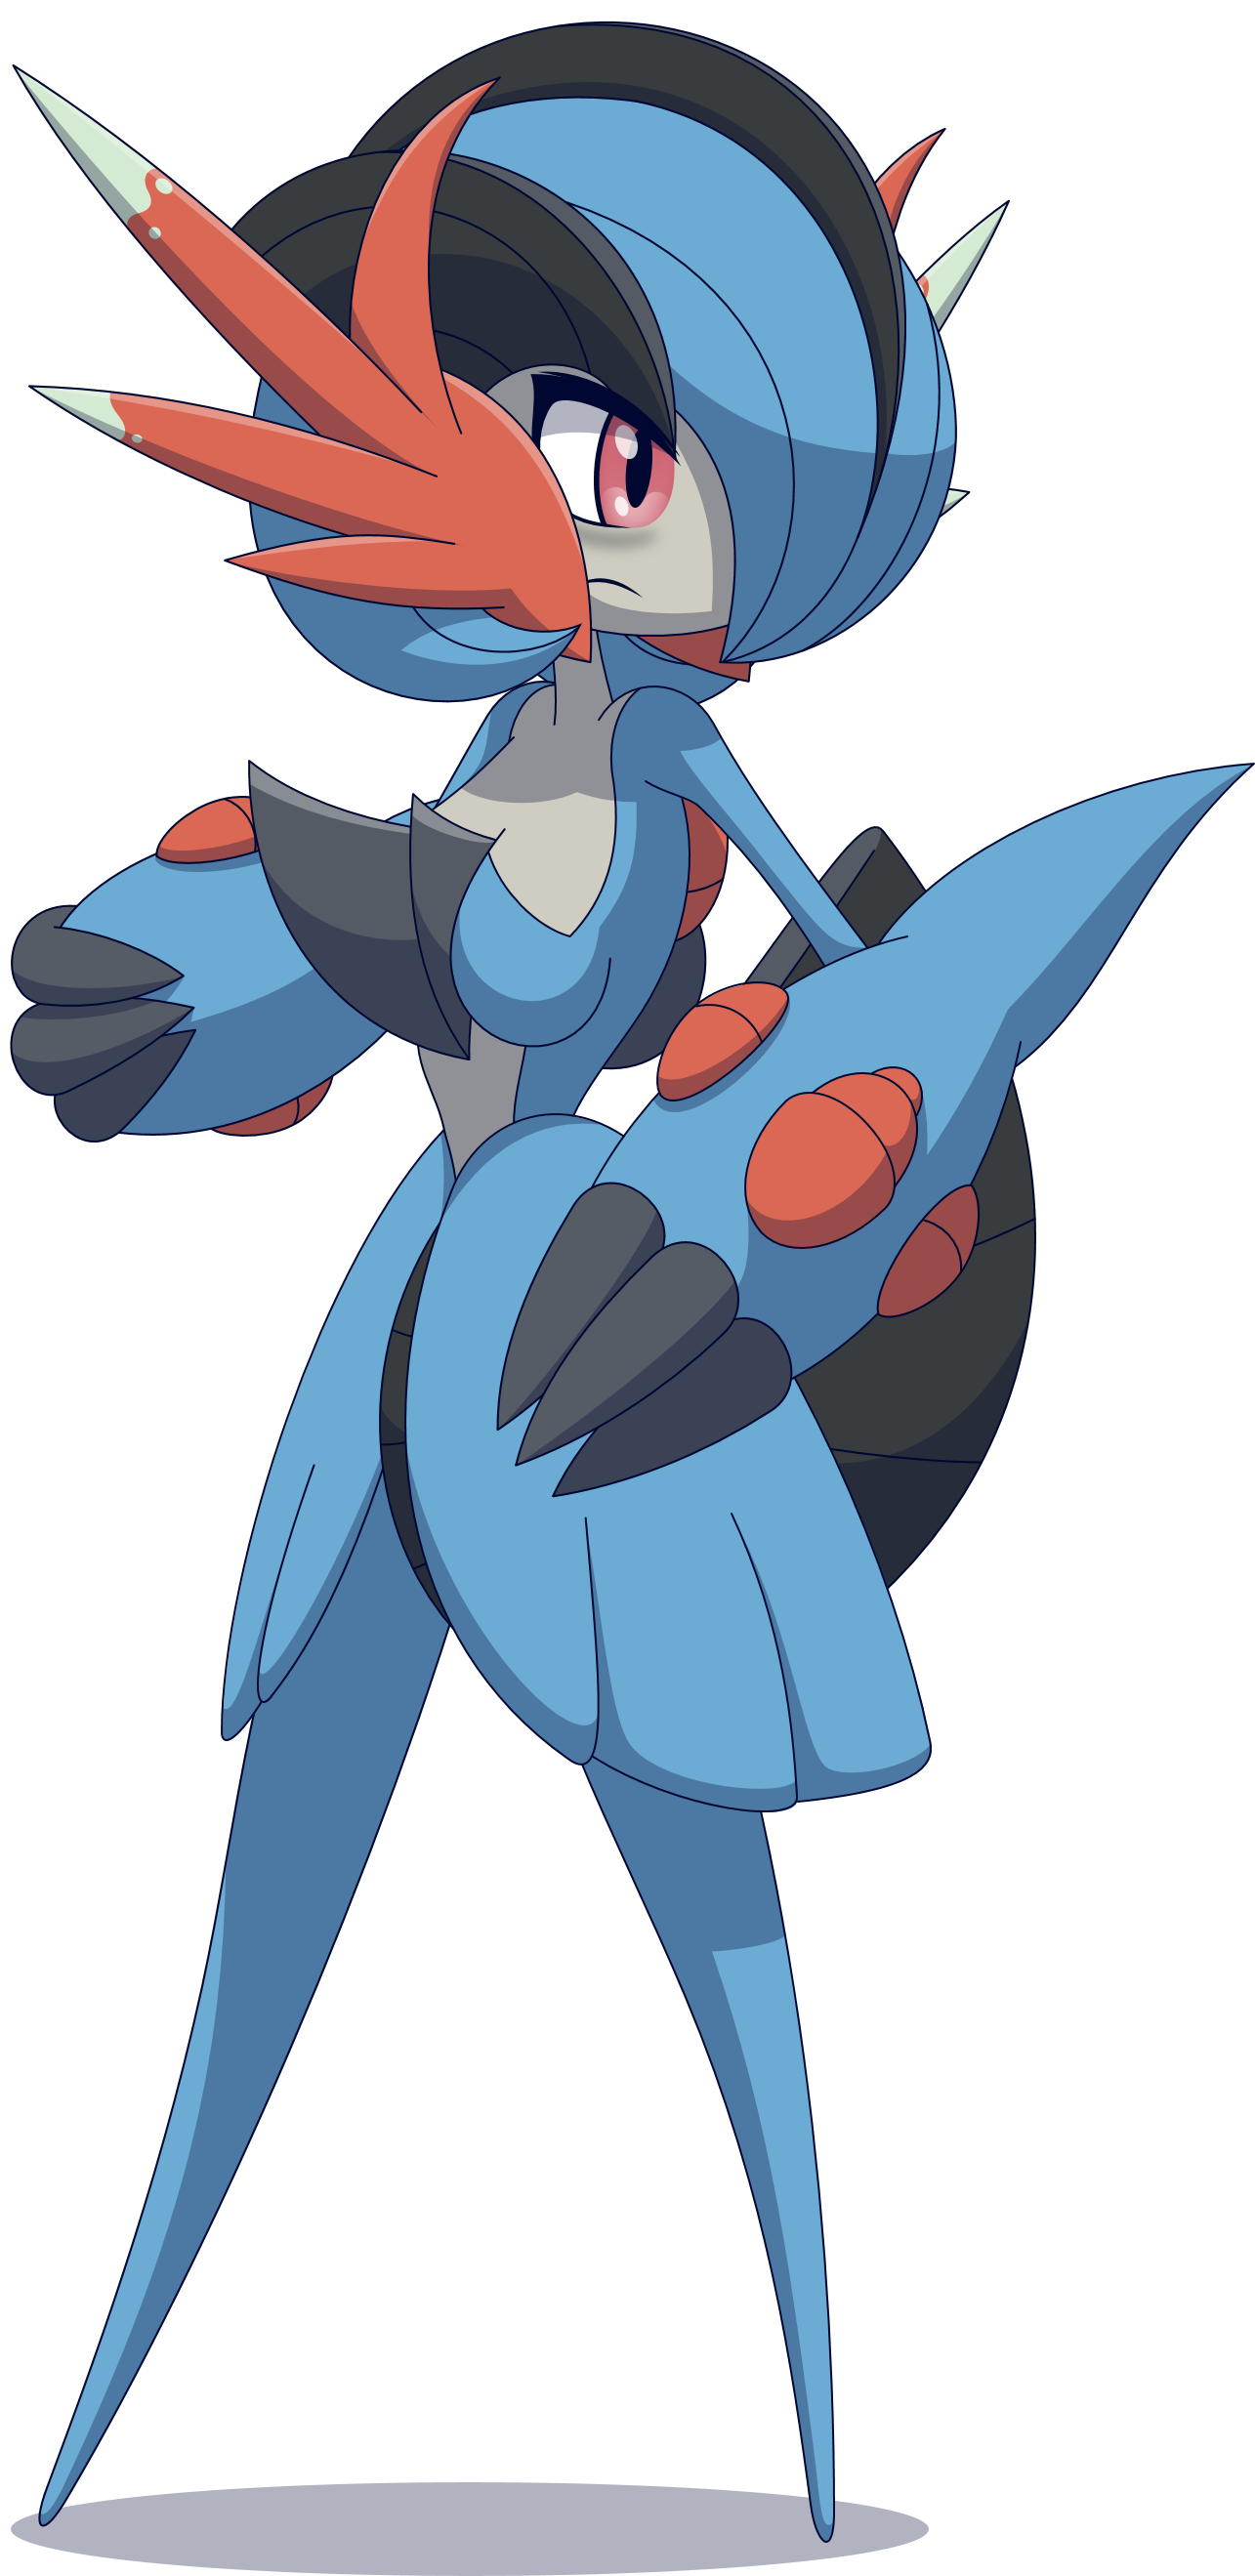 Mega Swampert Veronica by Zacatron94 on DeviantArt